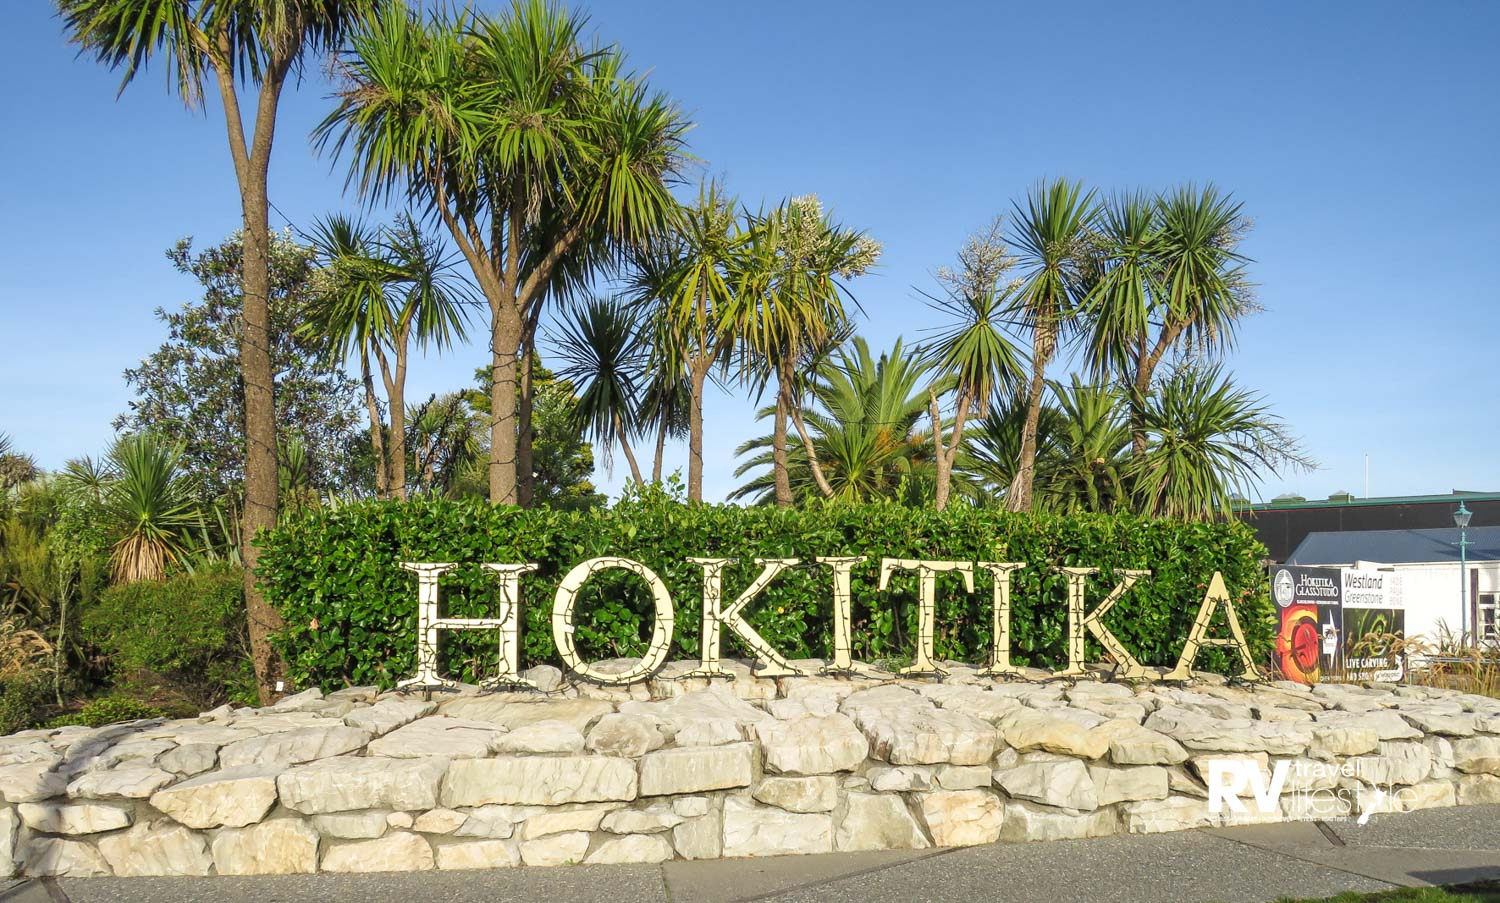 Hokitika welcome sign